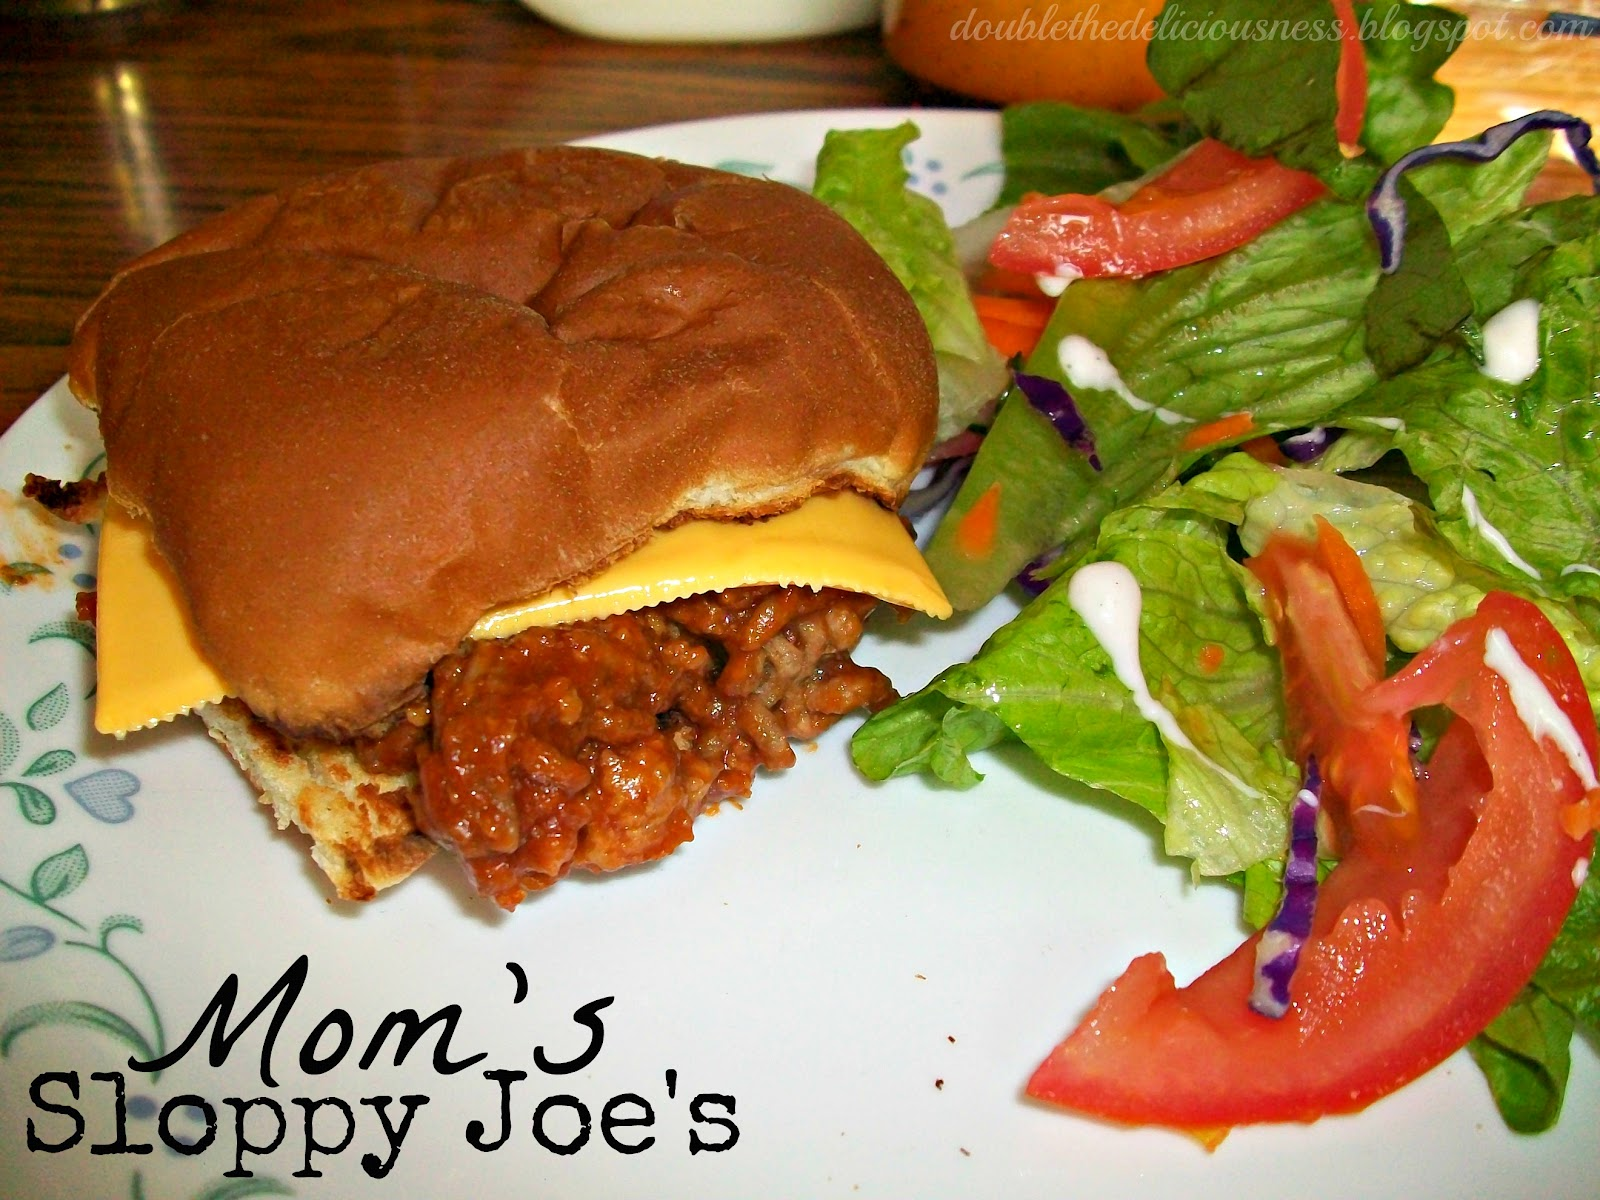 Double the Deliciousness: Mom's Sloppy Joes